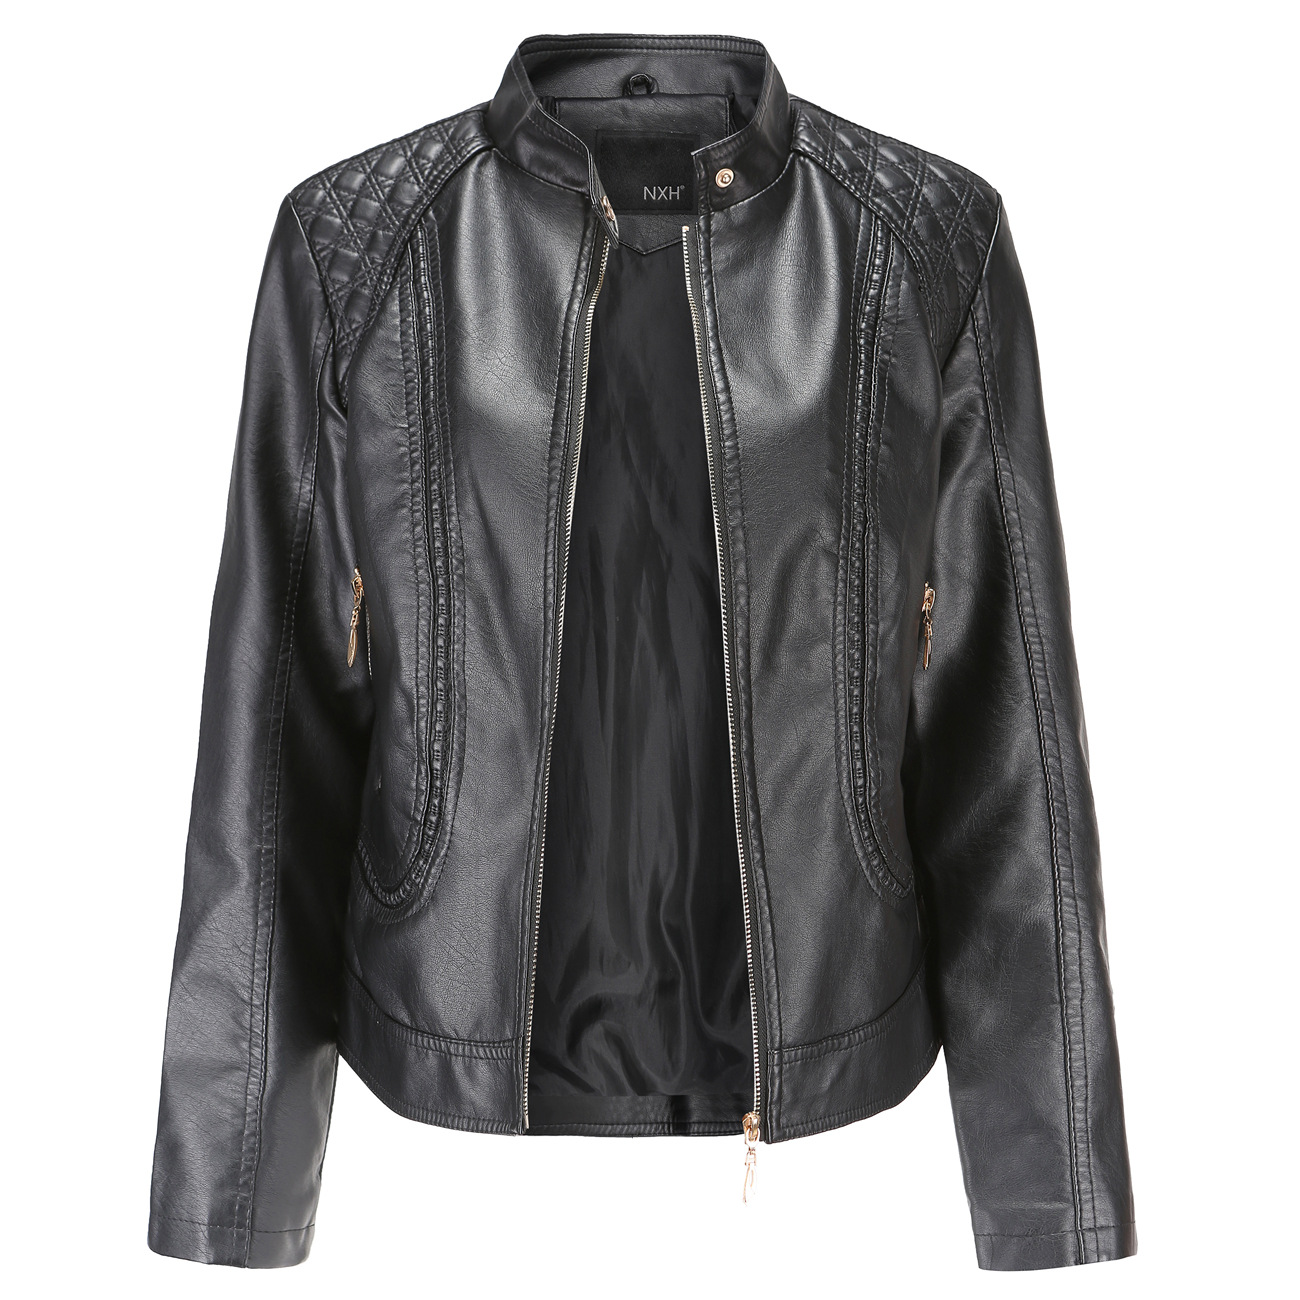 2019 Fashion New Women's Jacket European Fashion Leather Jacket Pimkie Cleaning Single PU Leather Motorcycle Temale Women's Leat(China)